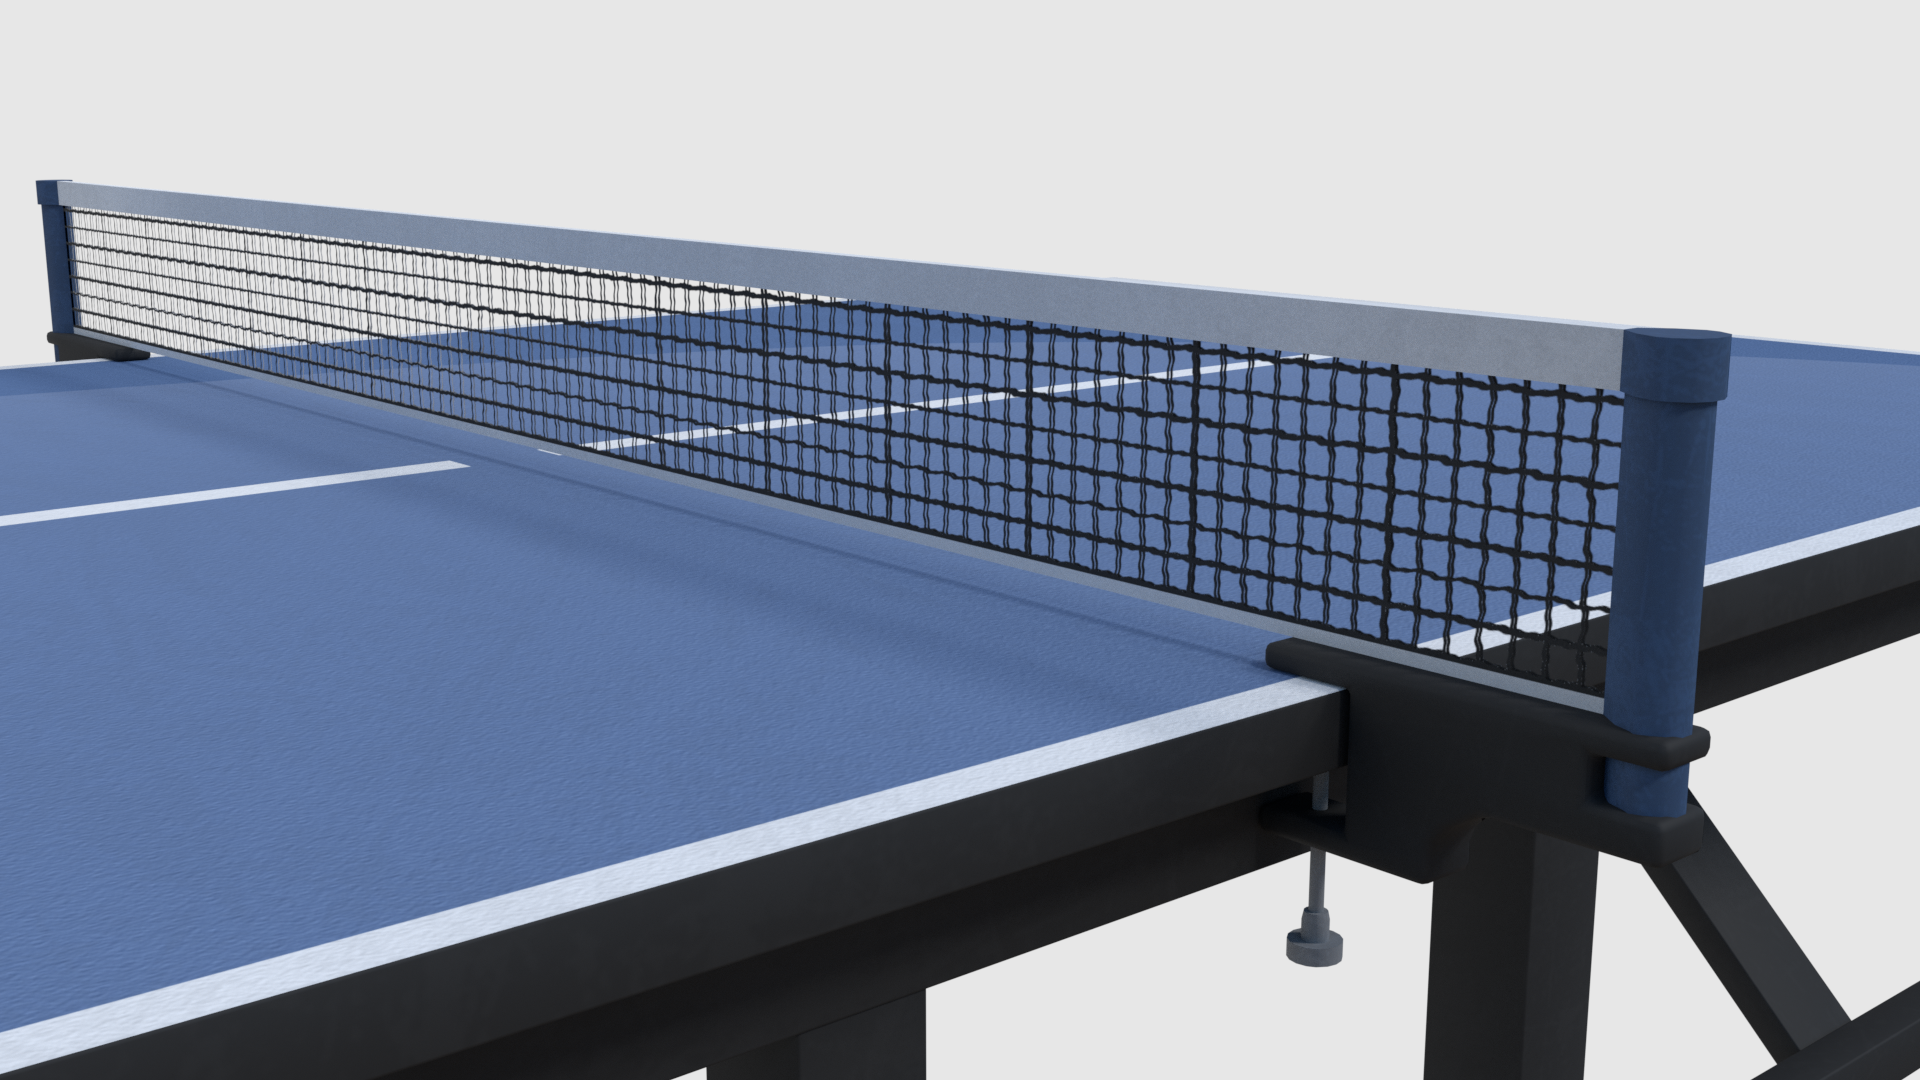 Table tennis set game ready by xepphirestudios 3docean for Table tennis